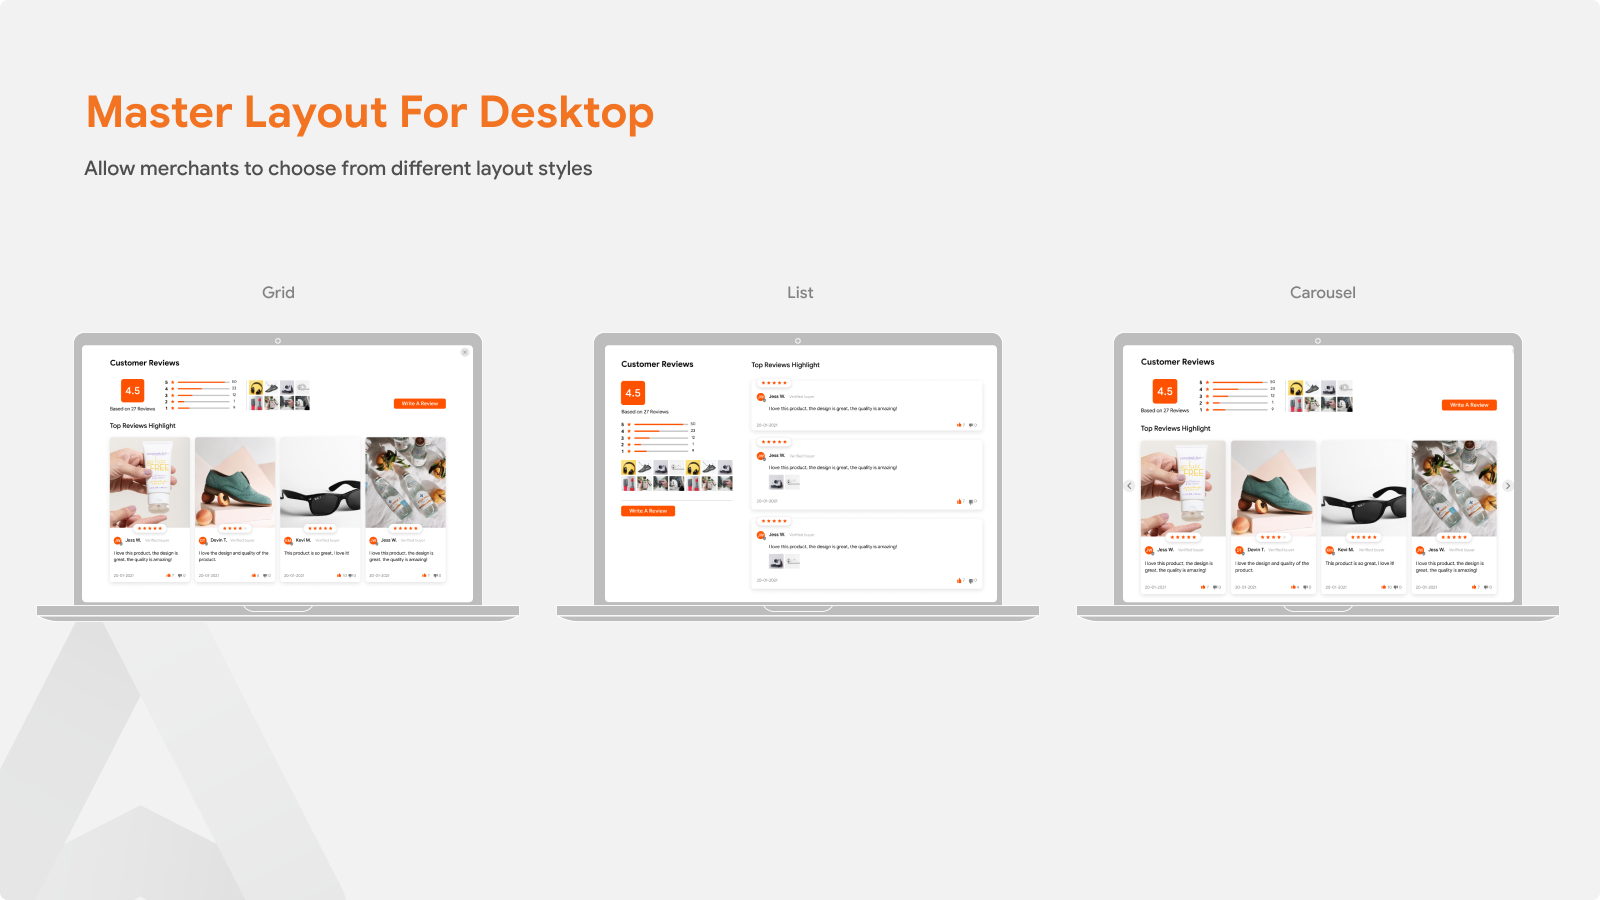 Product Reviews App  For Master Layout For Desktop